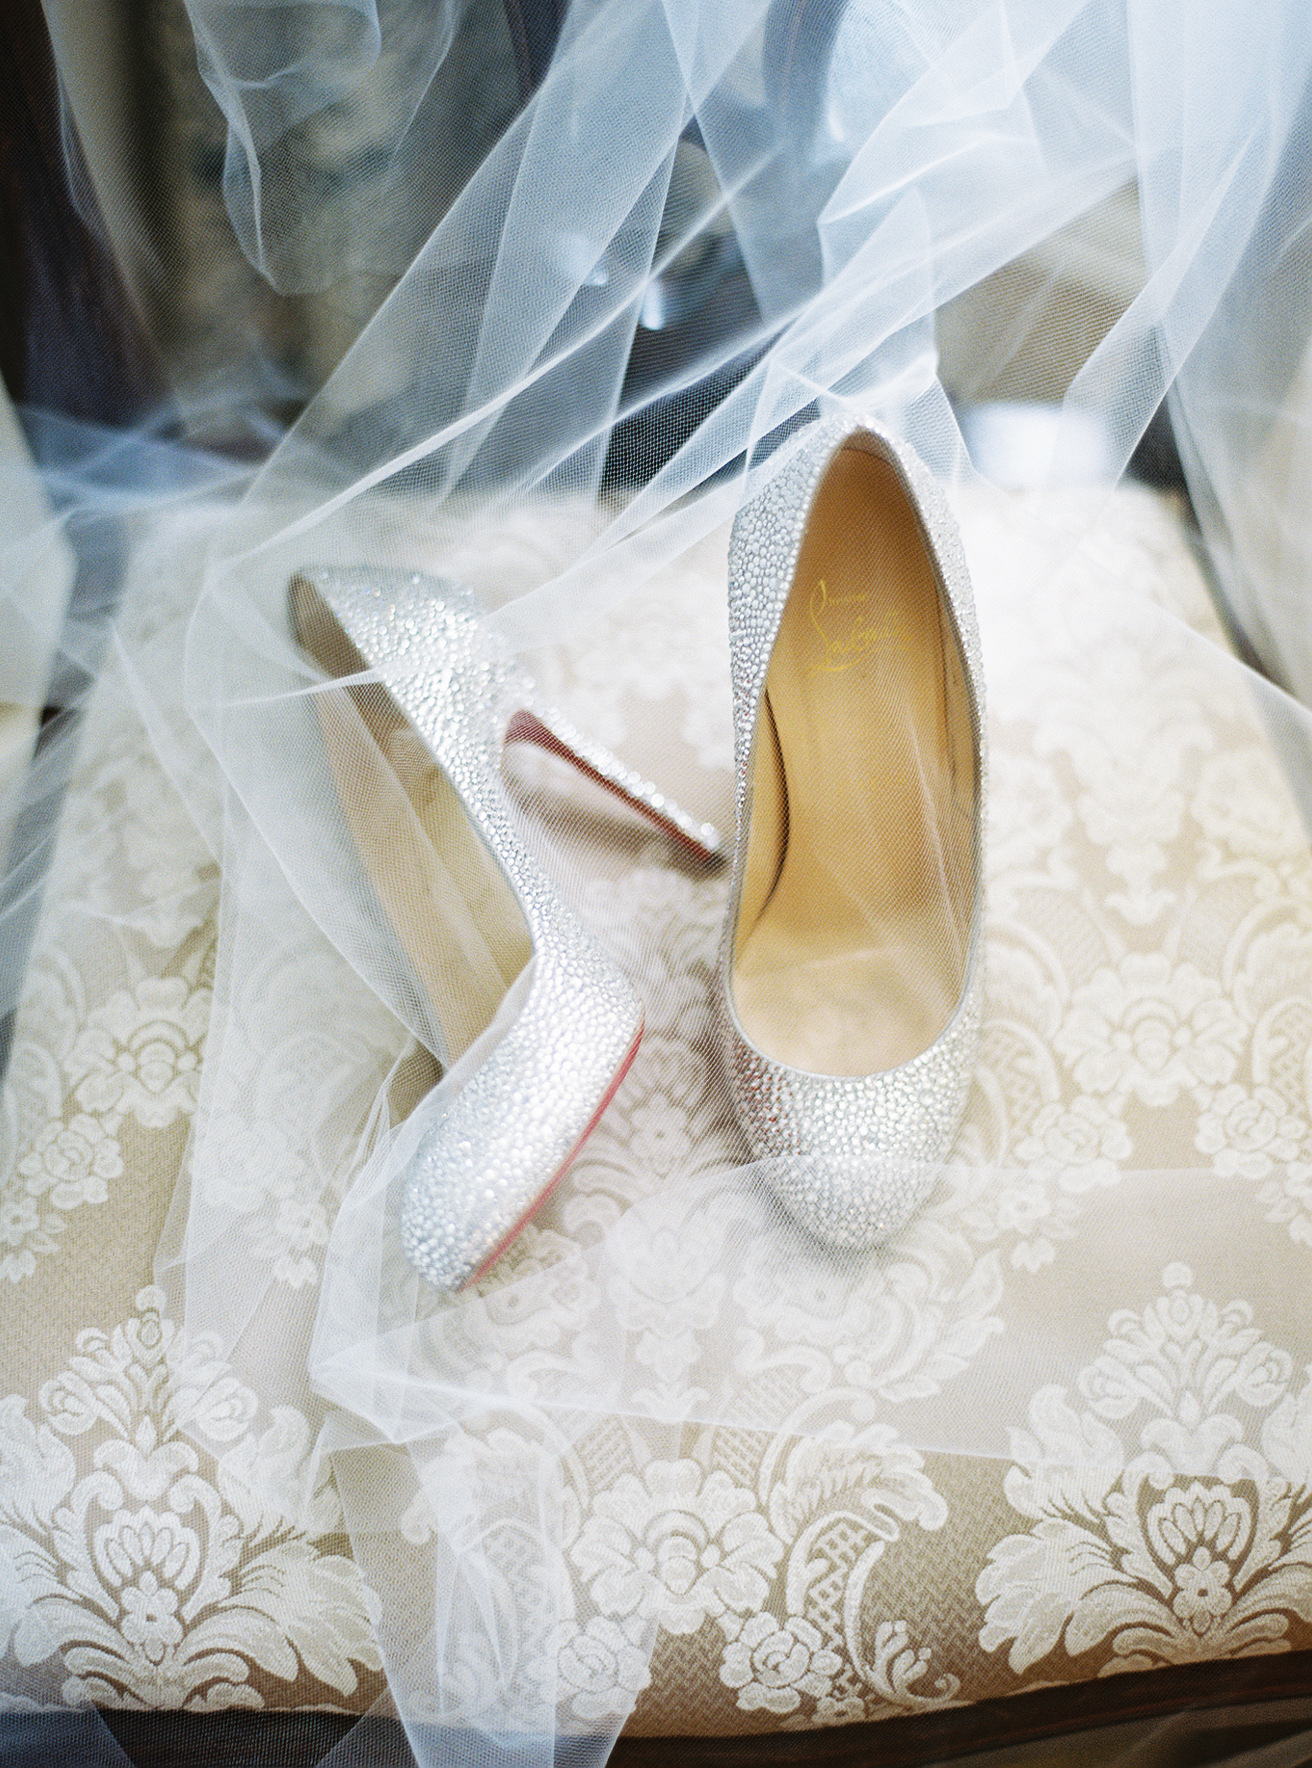 0139adam barnes photography keswick hall charlottesville virginia wedding.jpg